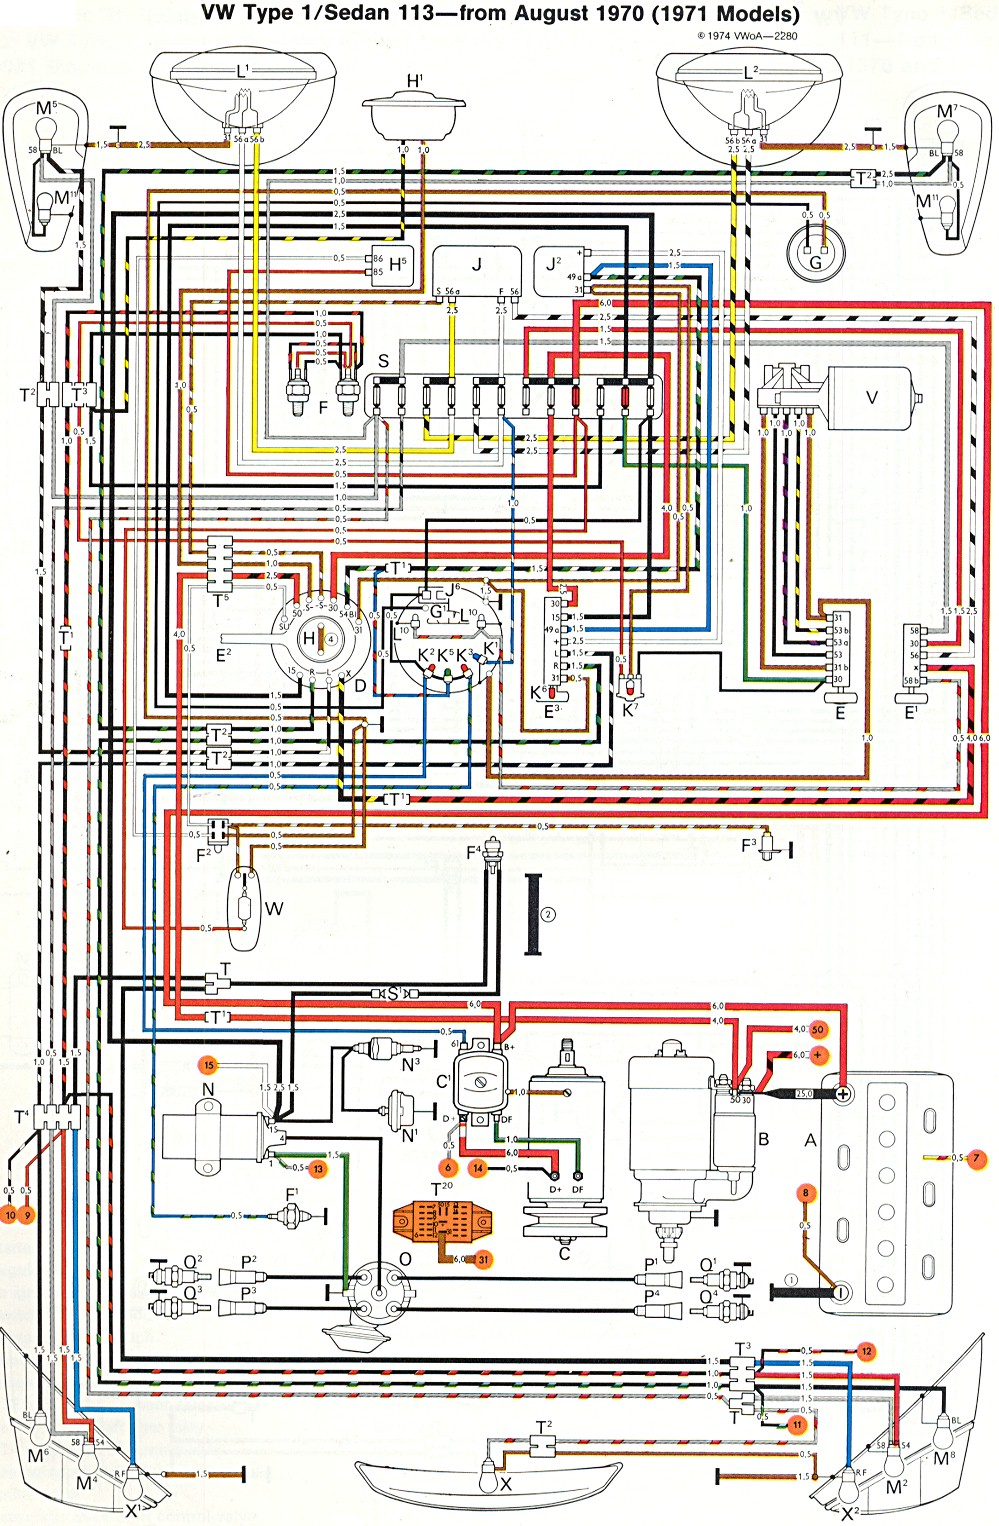 bug_super_71 1971 super beetle wiring diagram thegoldenbug com 1973 vw beetle wiring diagram at n-0.co